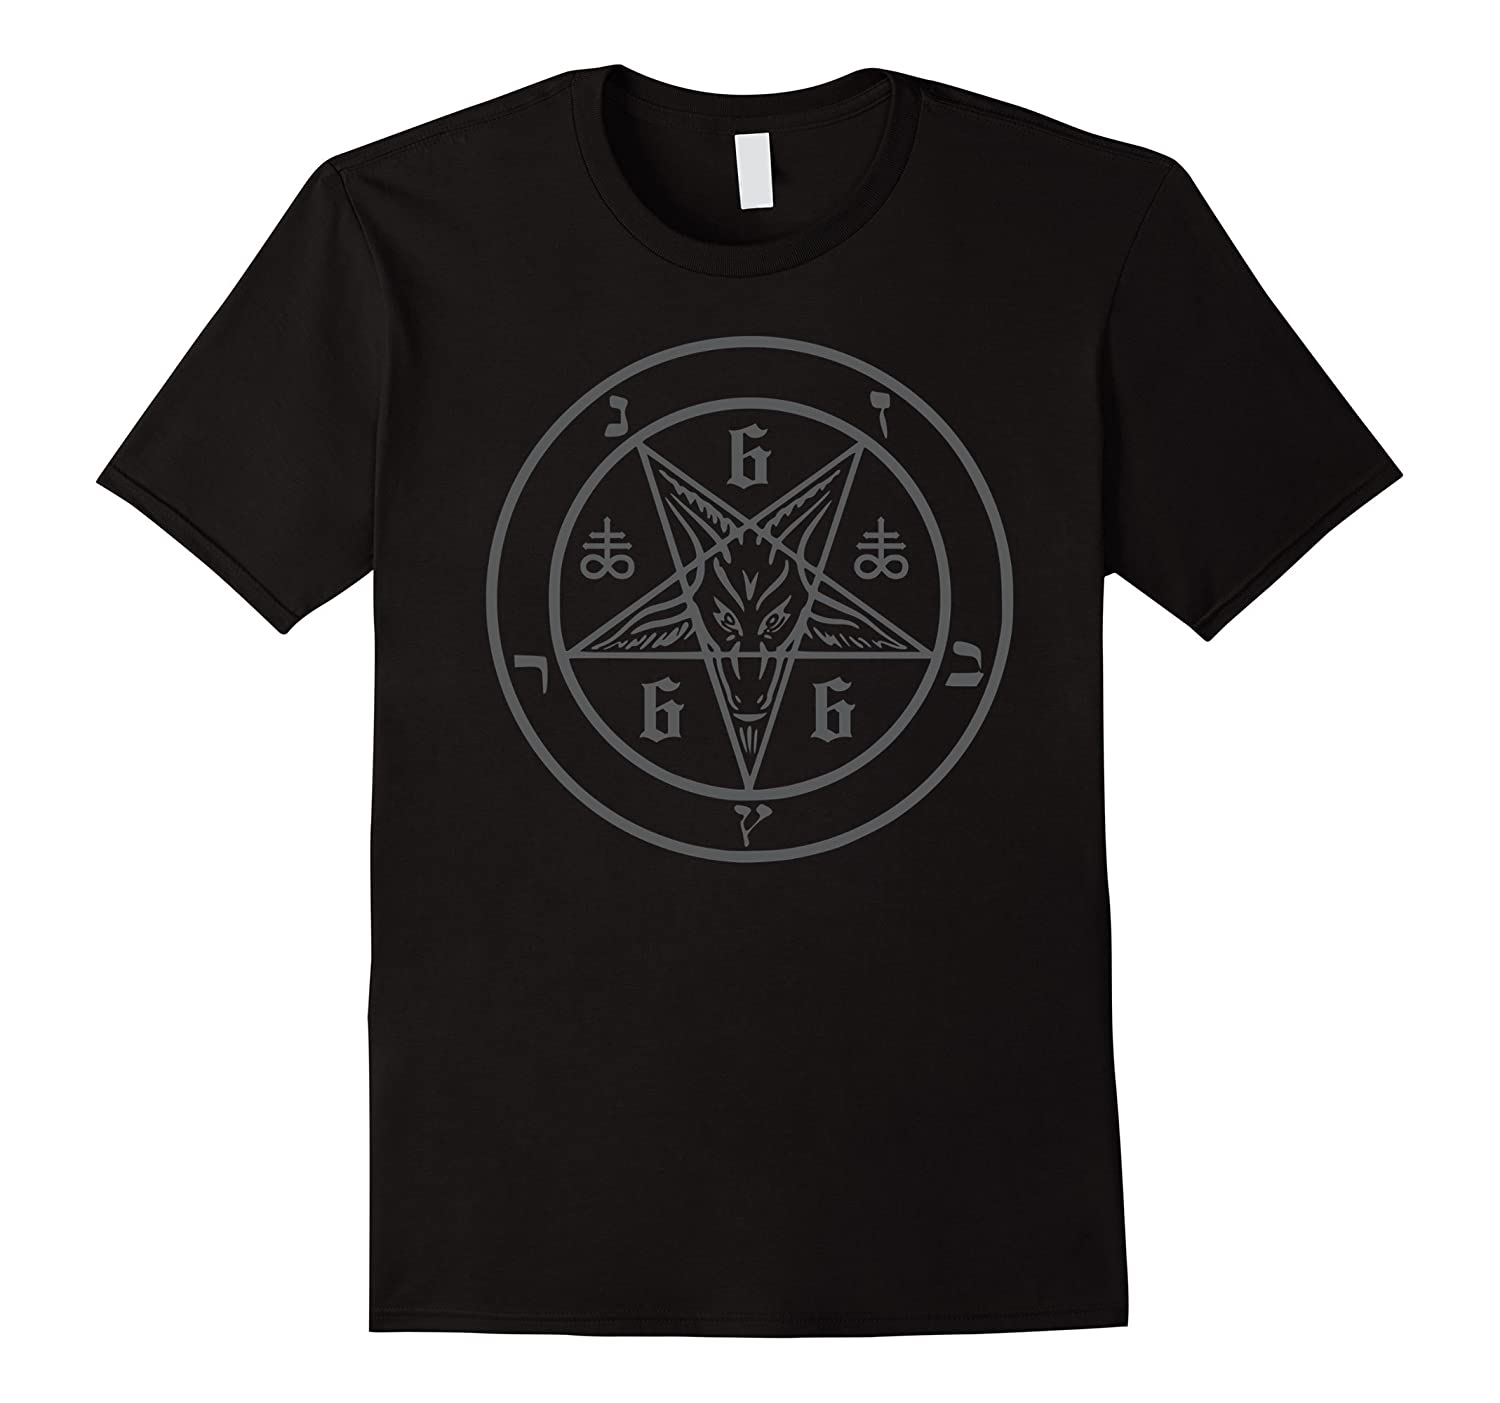 Satanic Pentagram 666 (Sigil of the Devil) Baphomet T-Shirt-T-Shirt